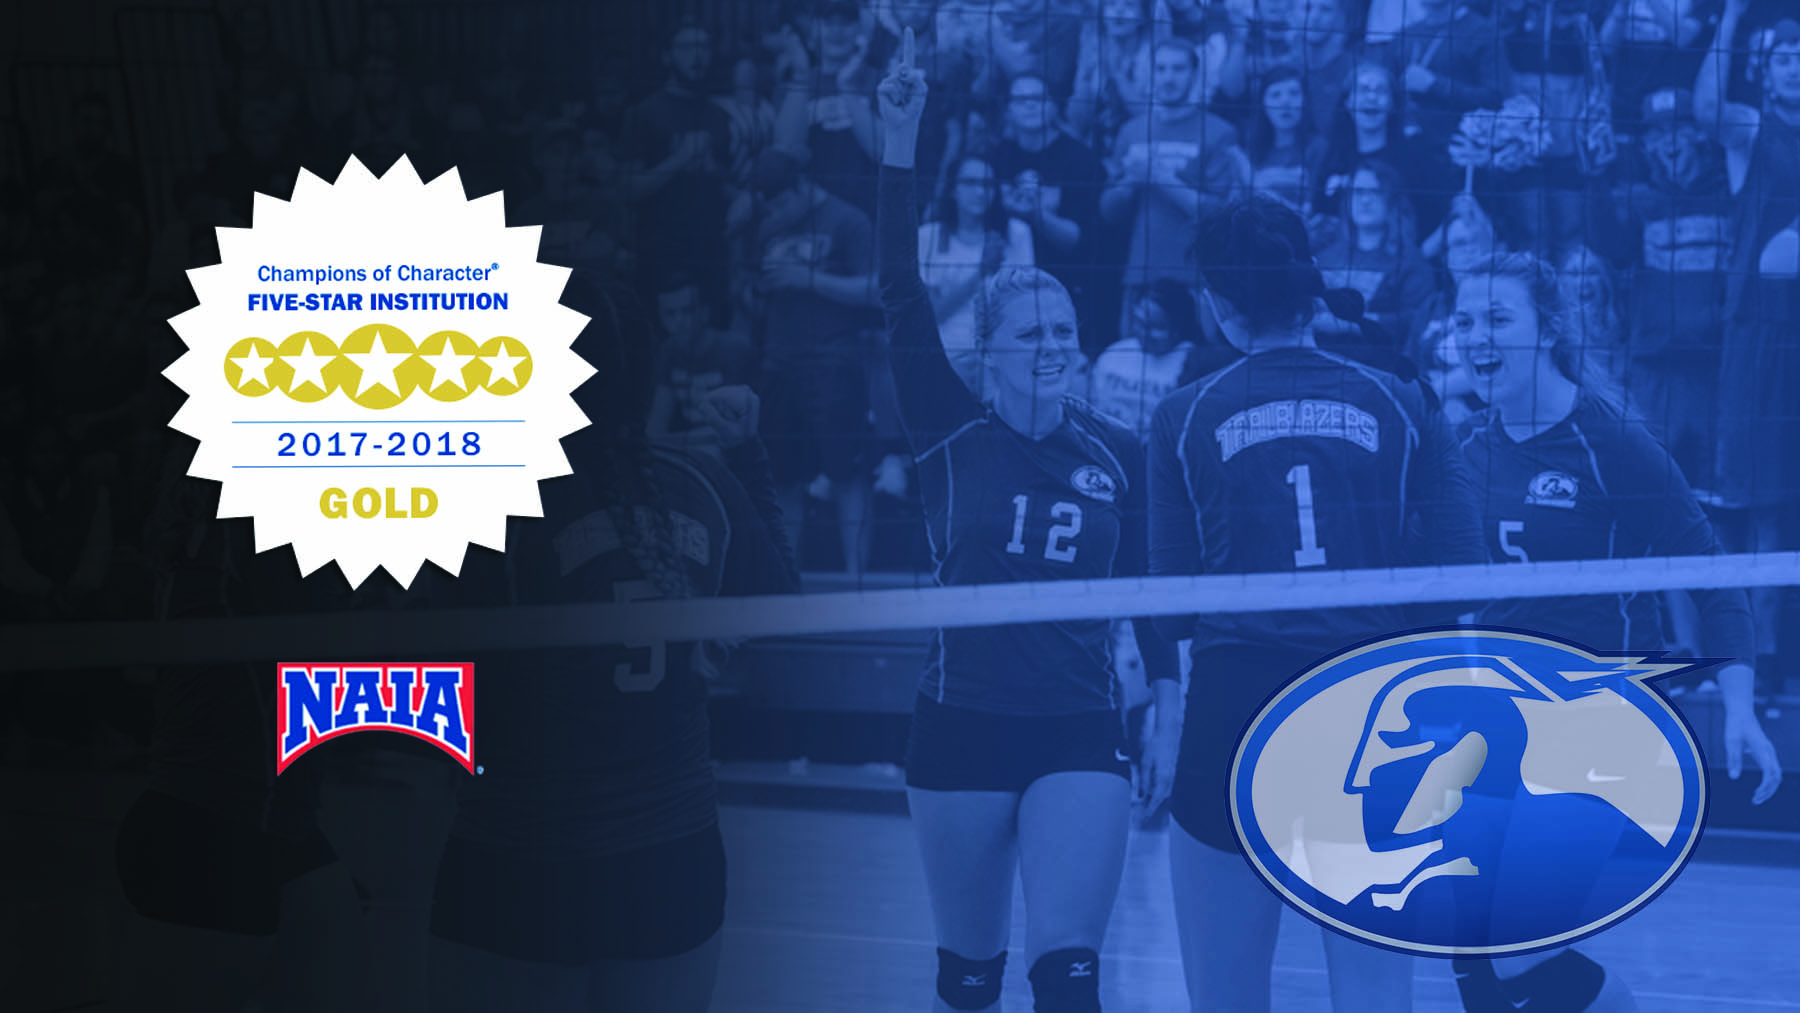 Ohio Christian University Named 2017-18 NAIA Champions of Character Five-Star Institution image